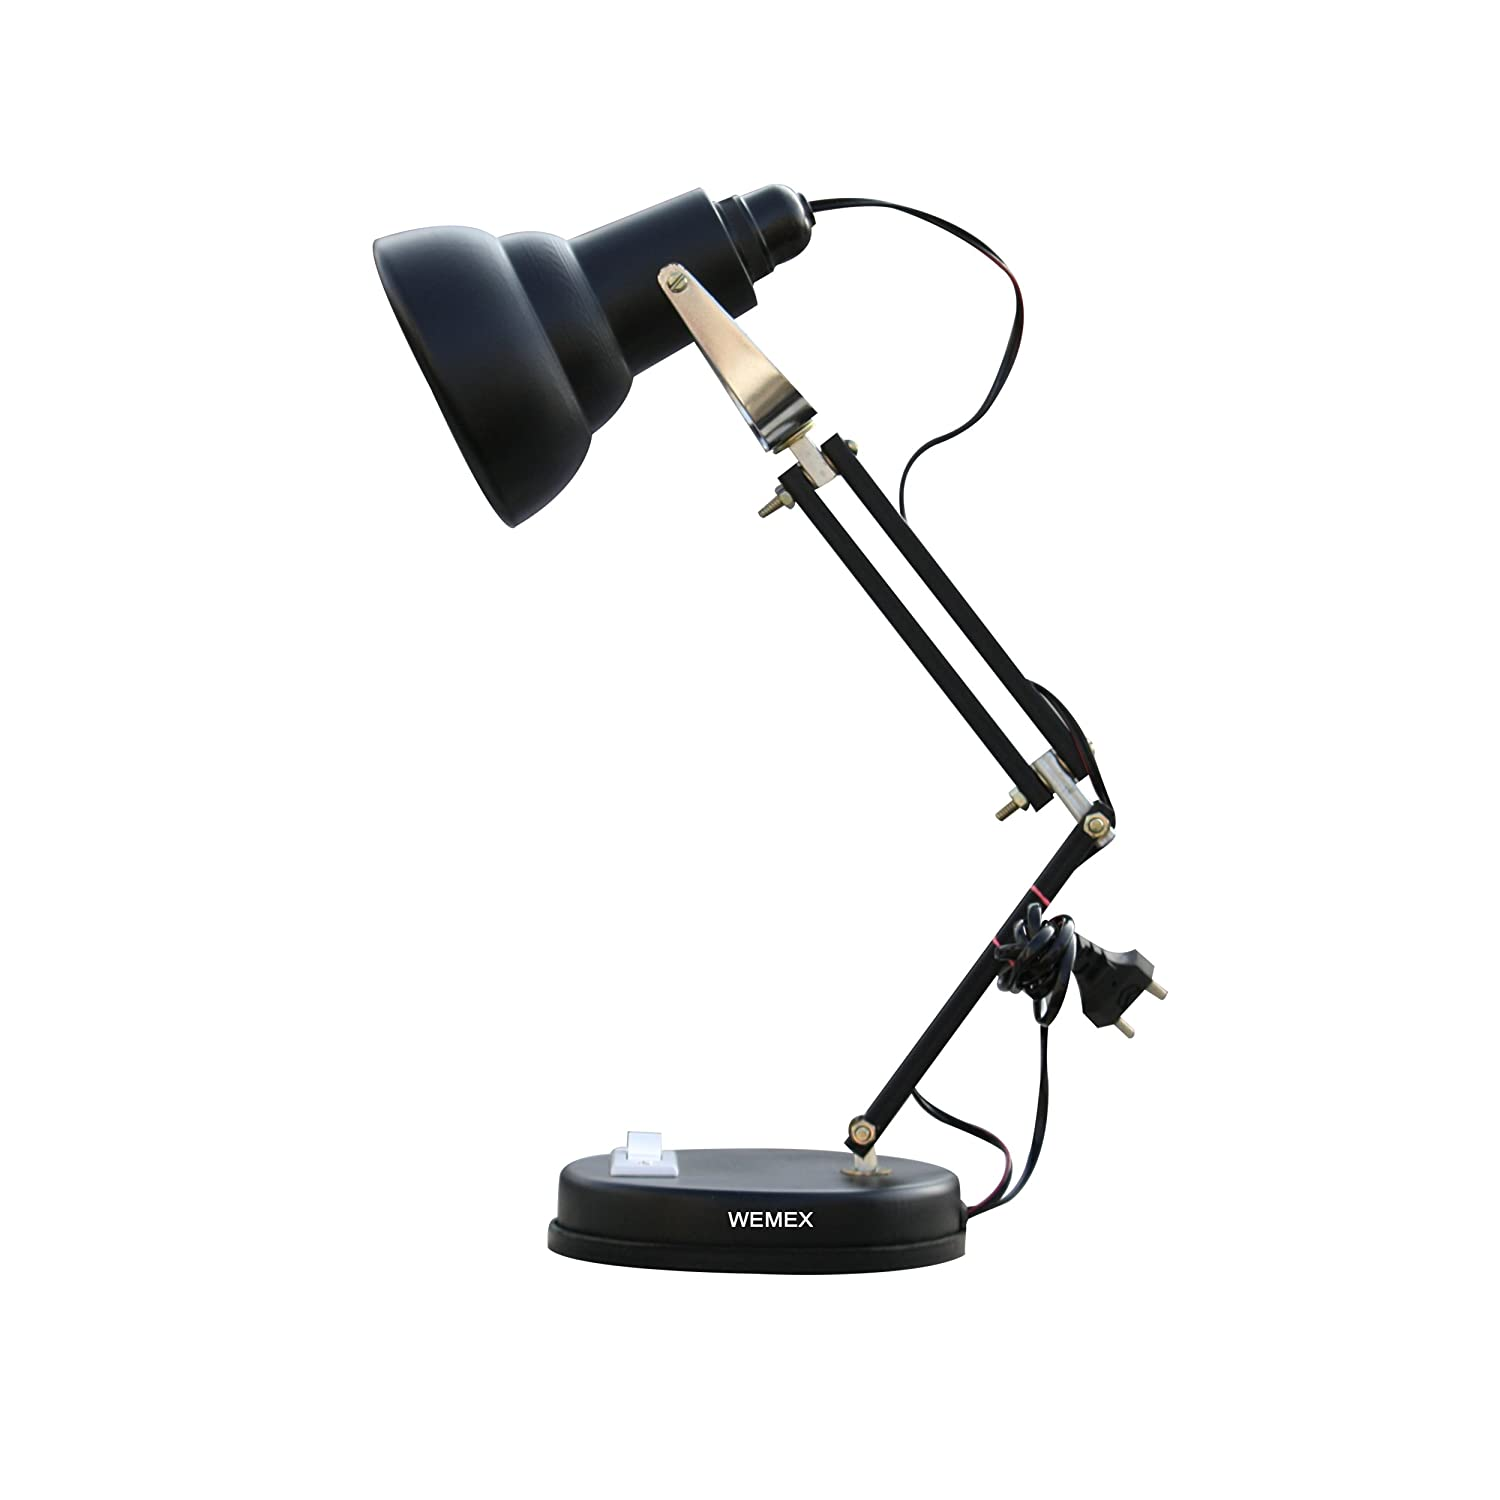 Buy wemex billie jean reading study table lamp online at low buy wemex billie jean reading study table lamp online at low prices in india amazon aloadofball Choice Image